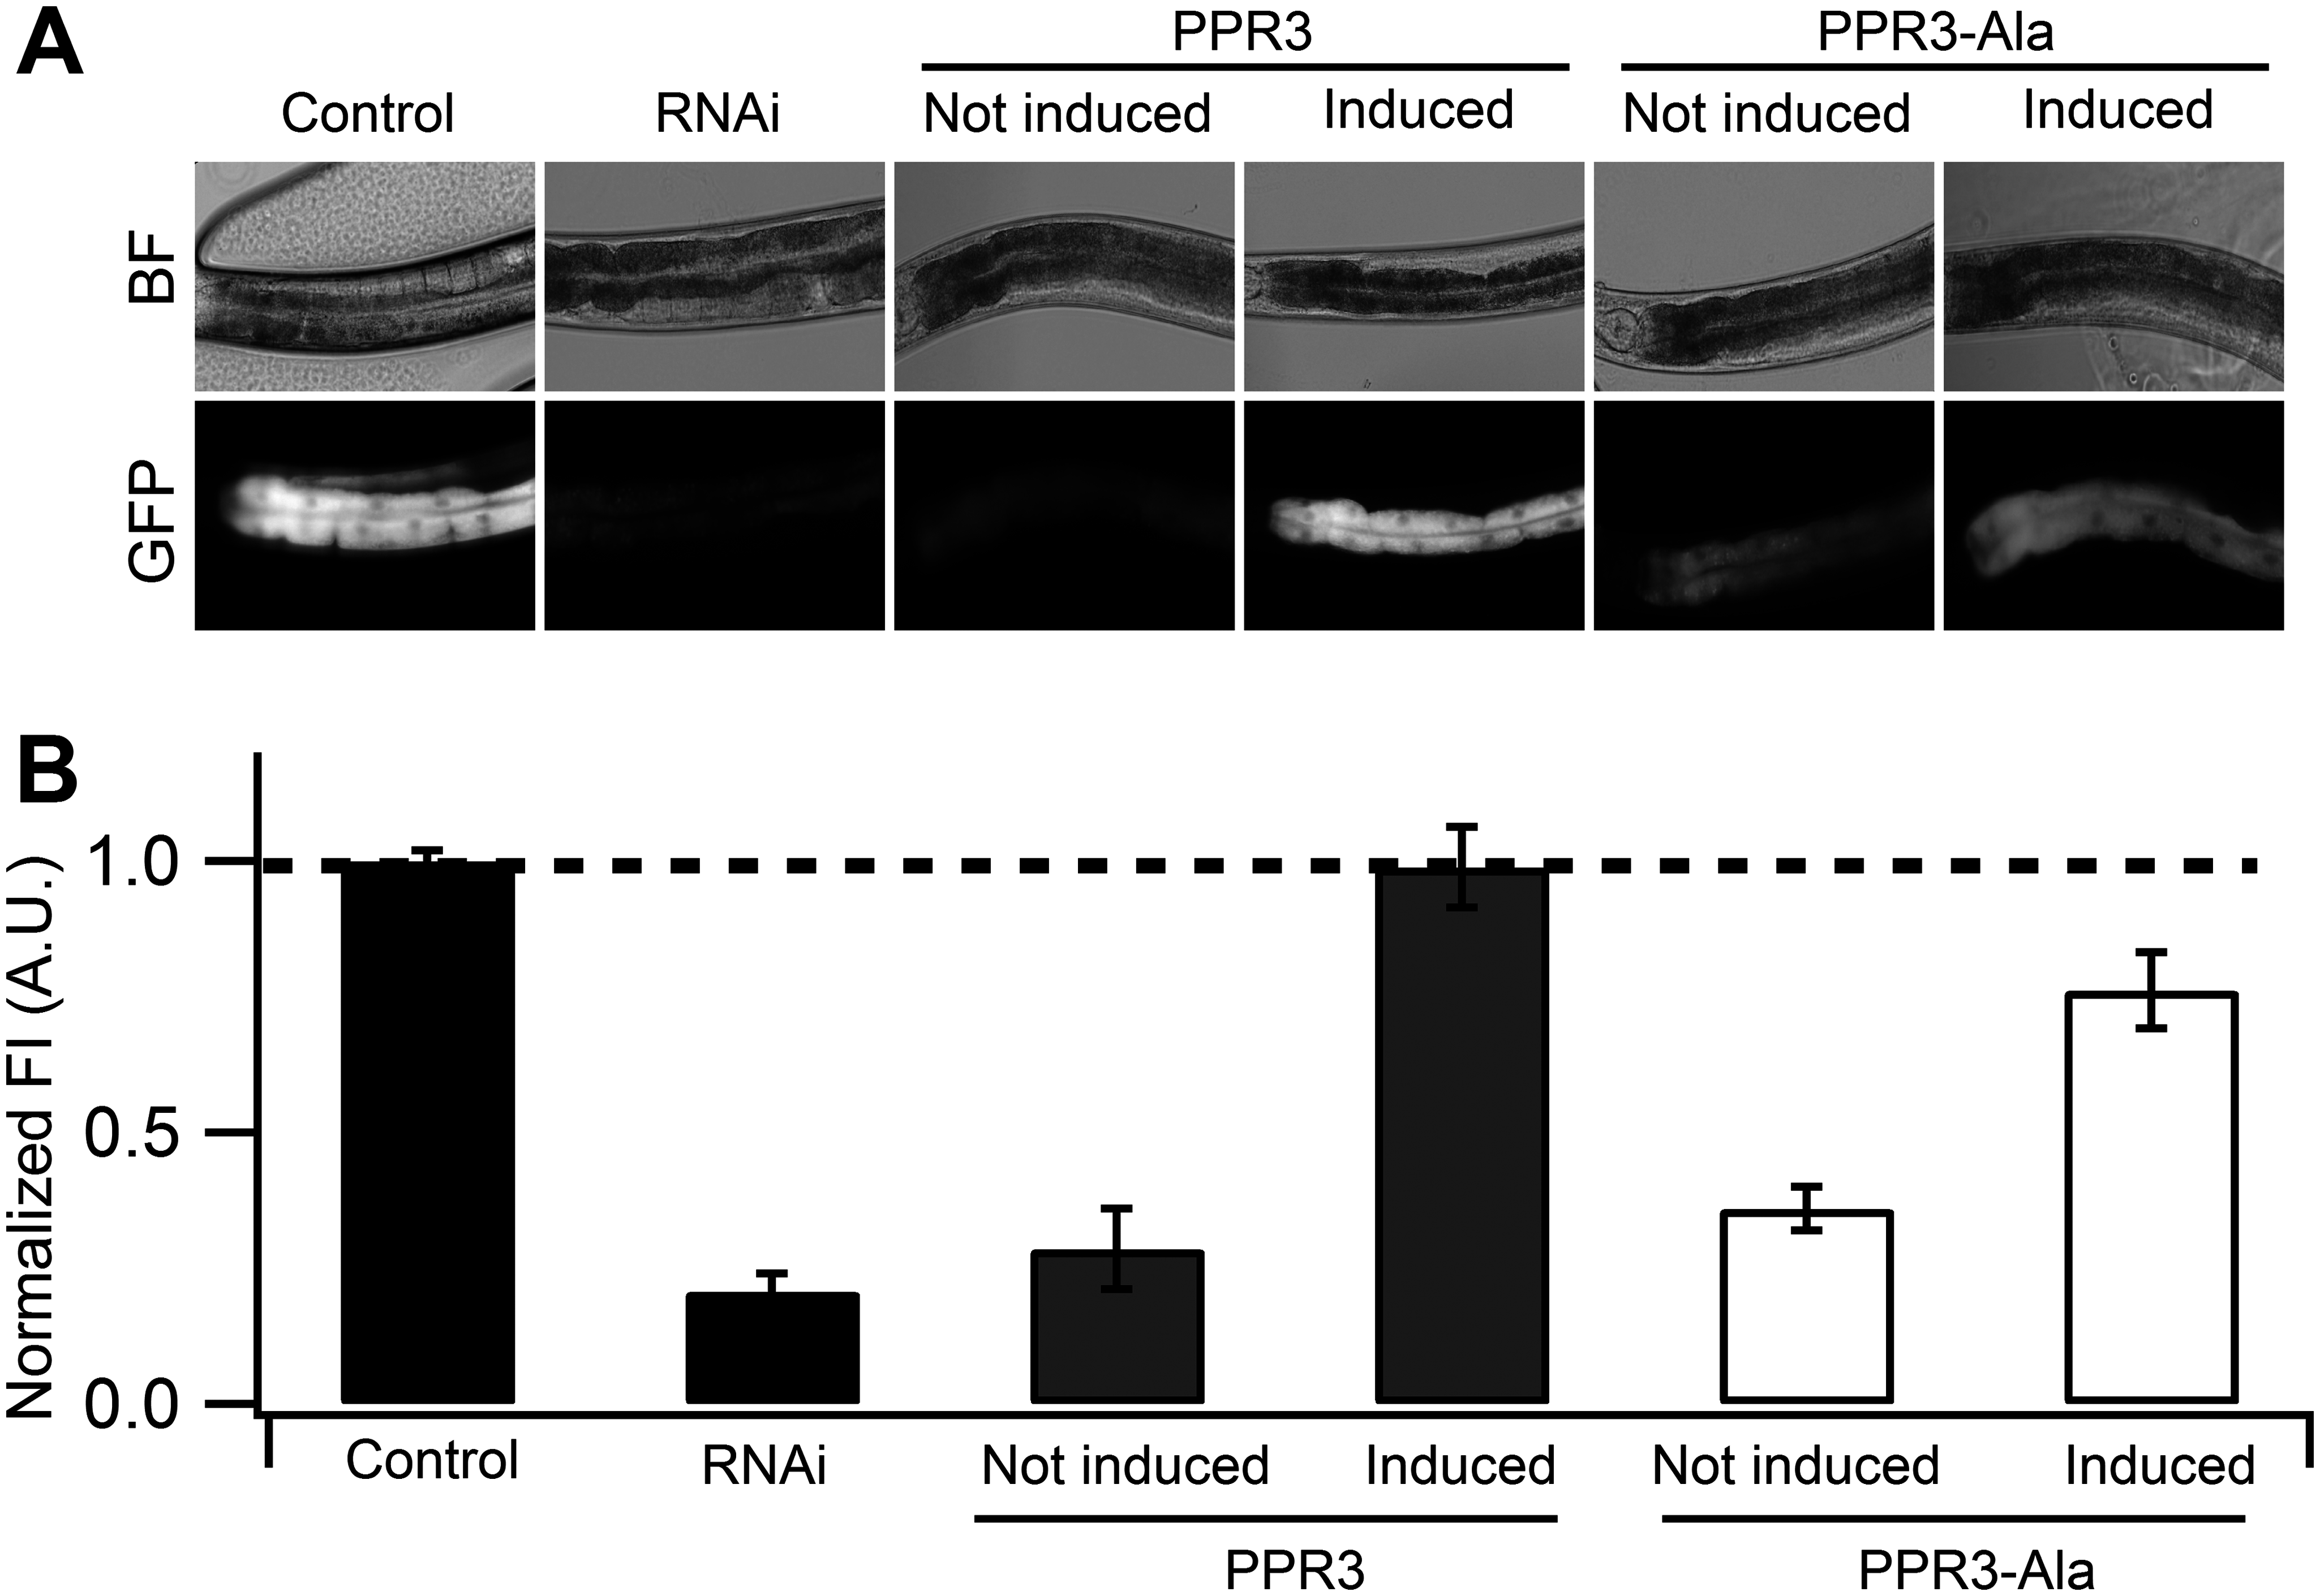 Suppression of RNAi in <i>C</i>. <i>elegans</i> by PPR3 and PPR3-Ala.